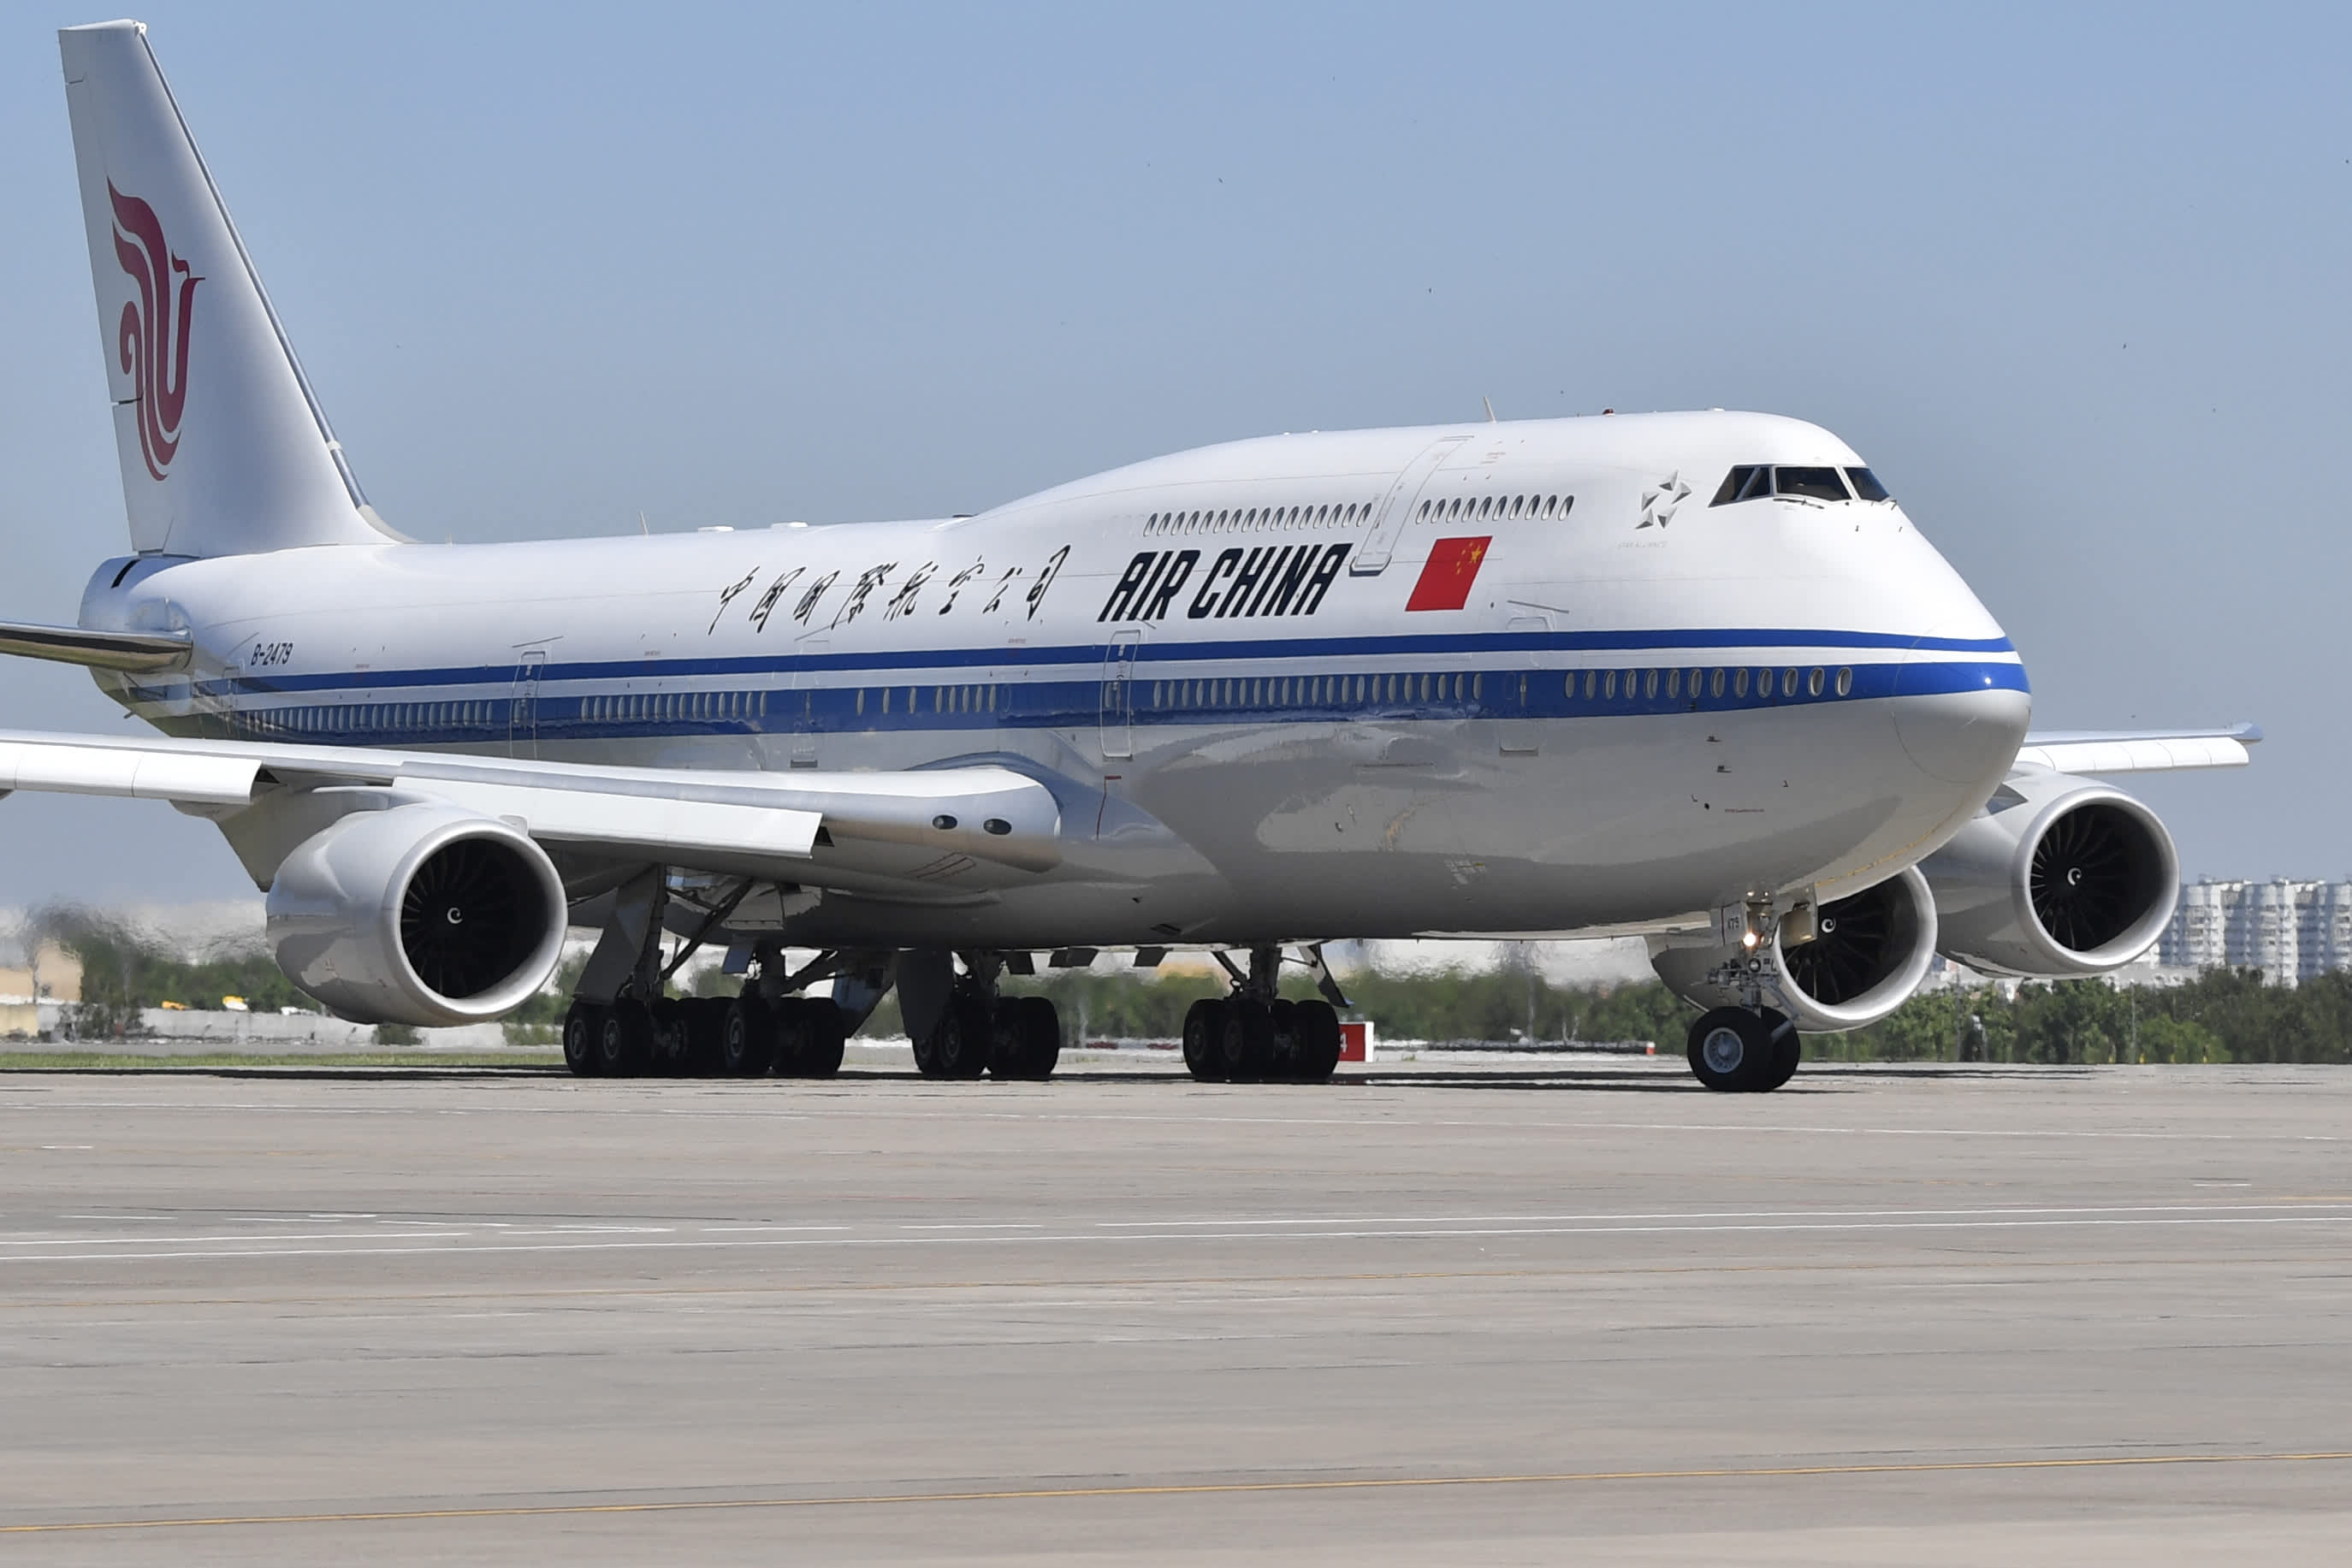 Boeing values China's aircraft business at almost $3 trillion over the next two decades